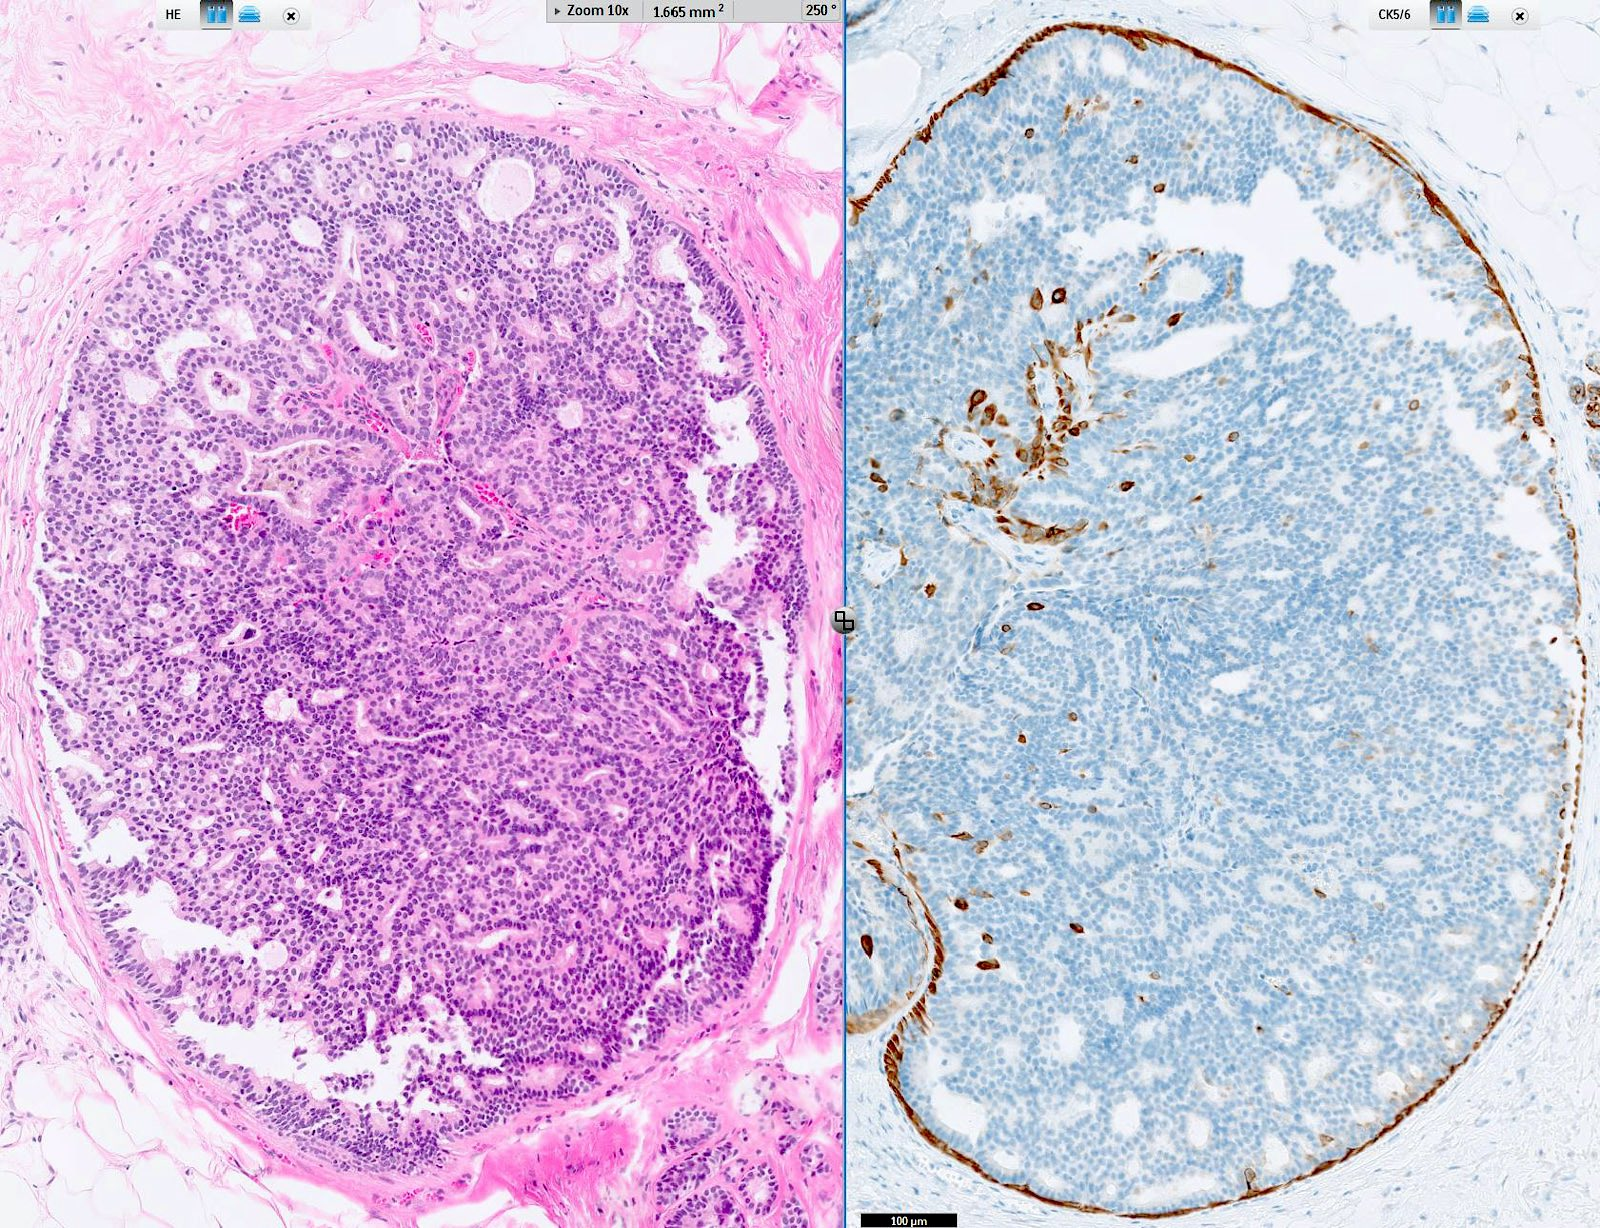 Duct papilloma histology, Squamous Papilloma - Larynx - Histopathology hpv oropharynx cancer